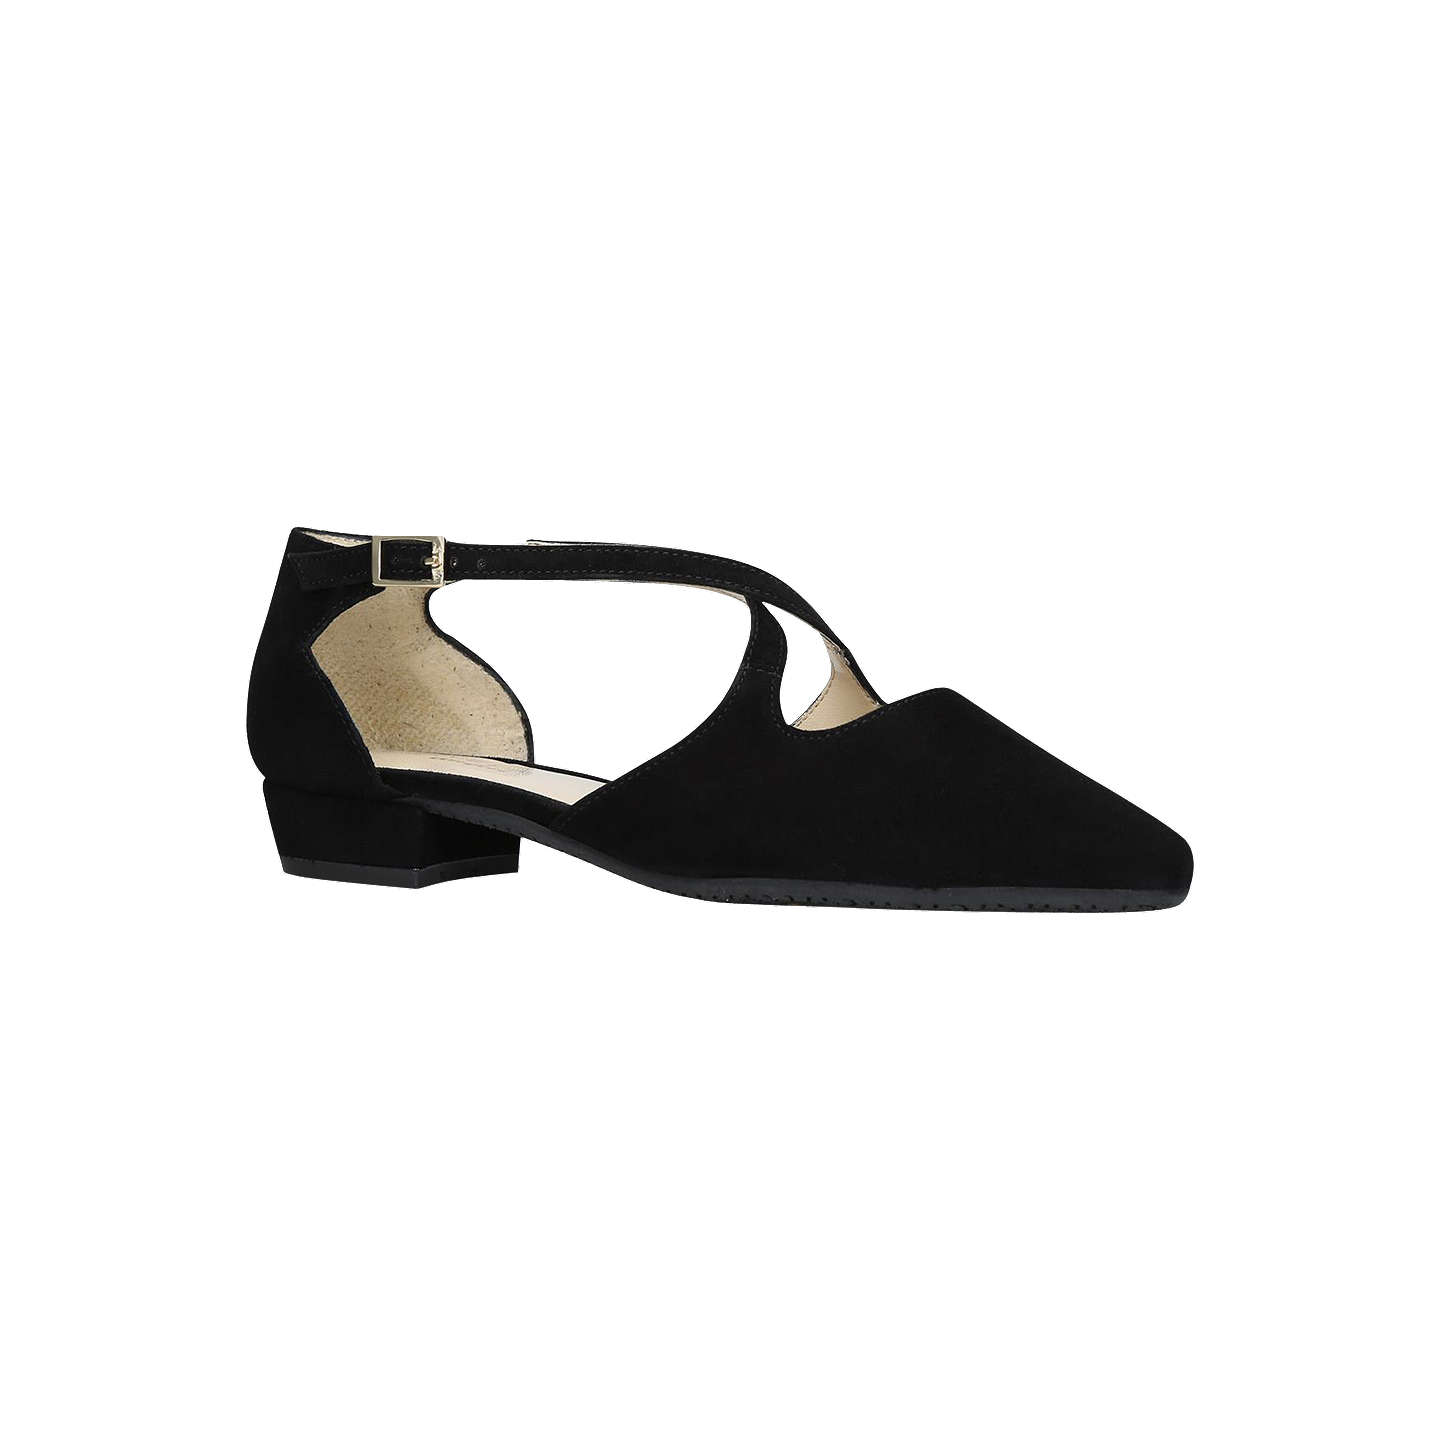 sale new styles Black 'Amour' low heel court shoes free shipping explore discounts online CNRyhLS